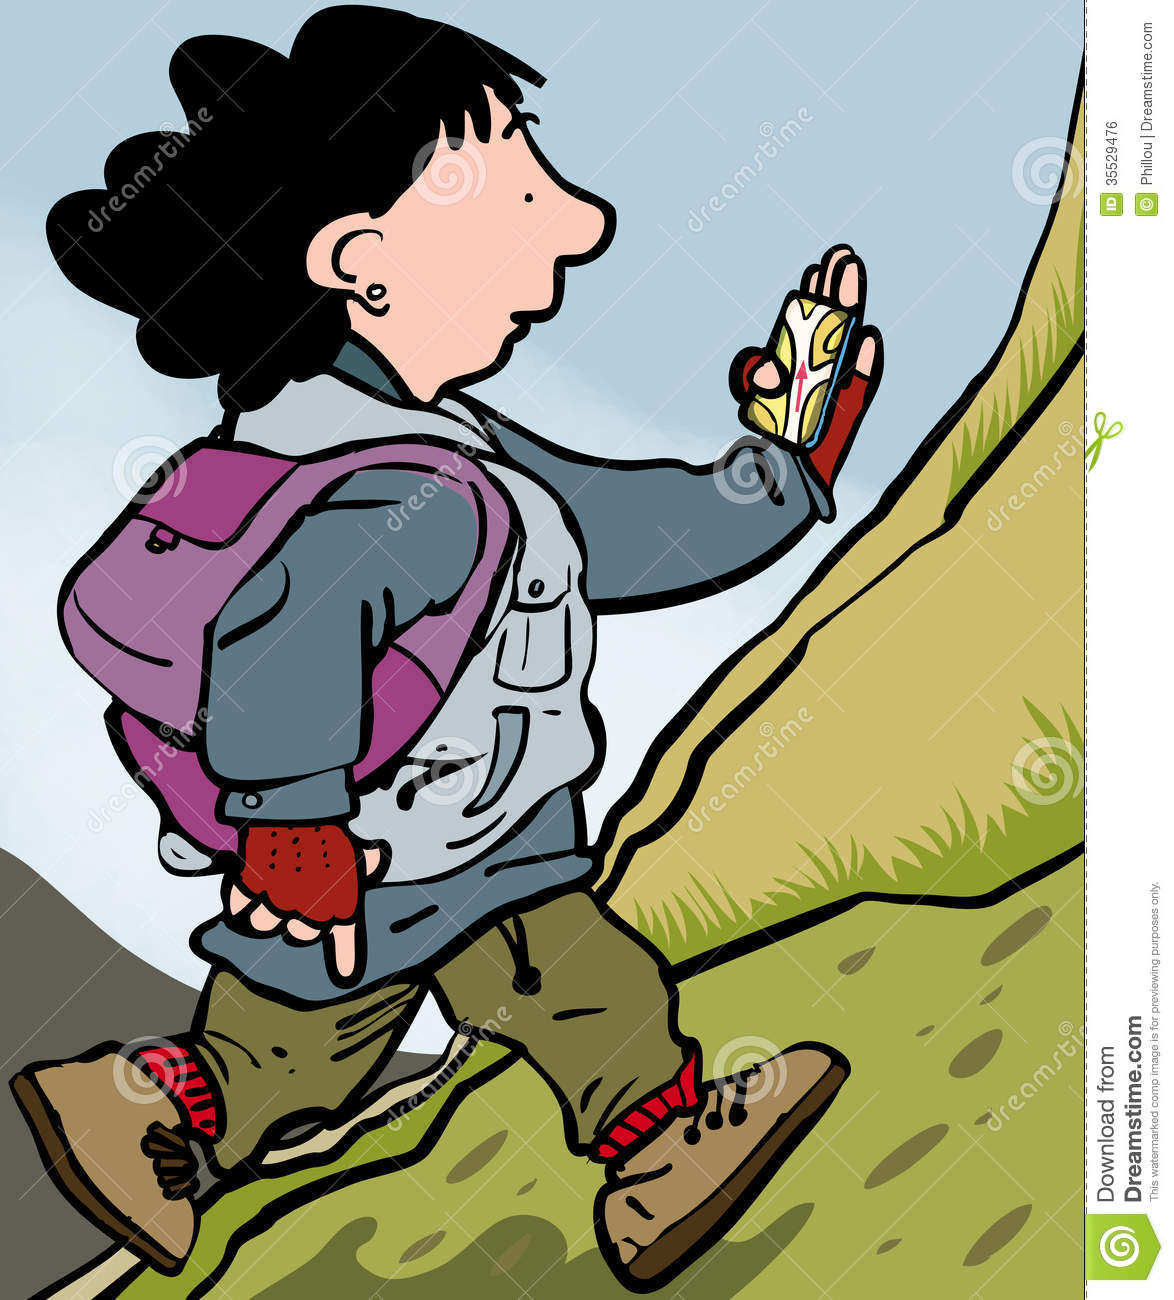 Woman Hillwalking Guided by